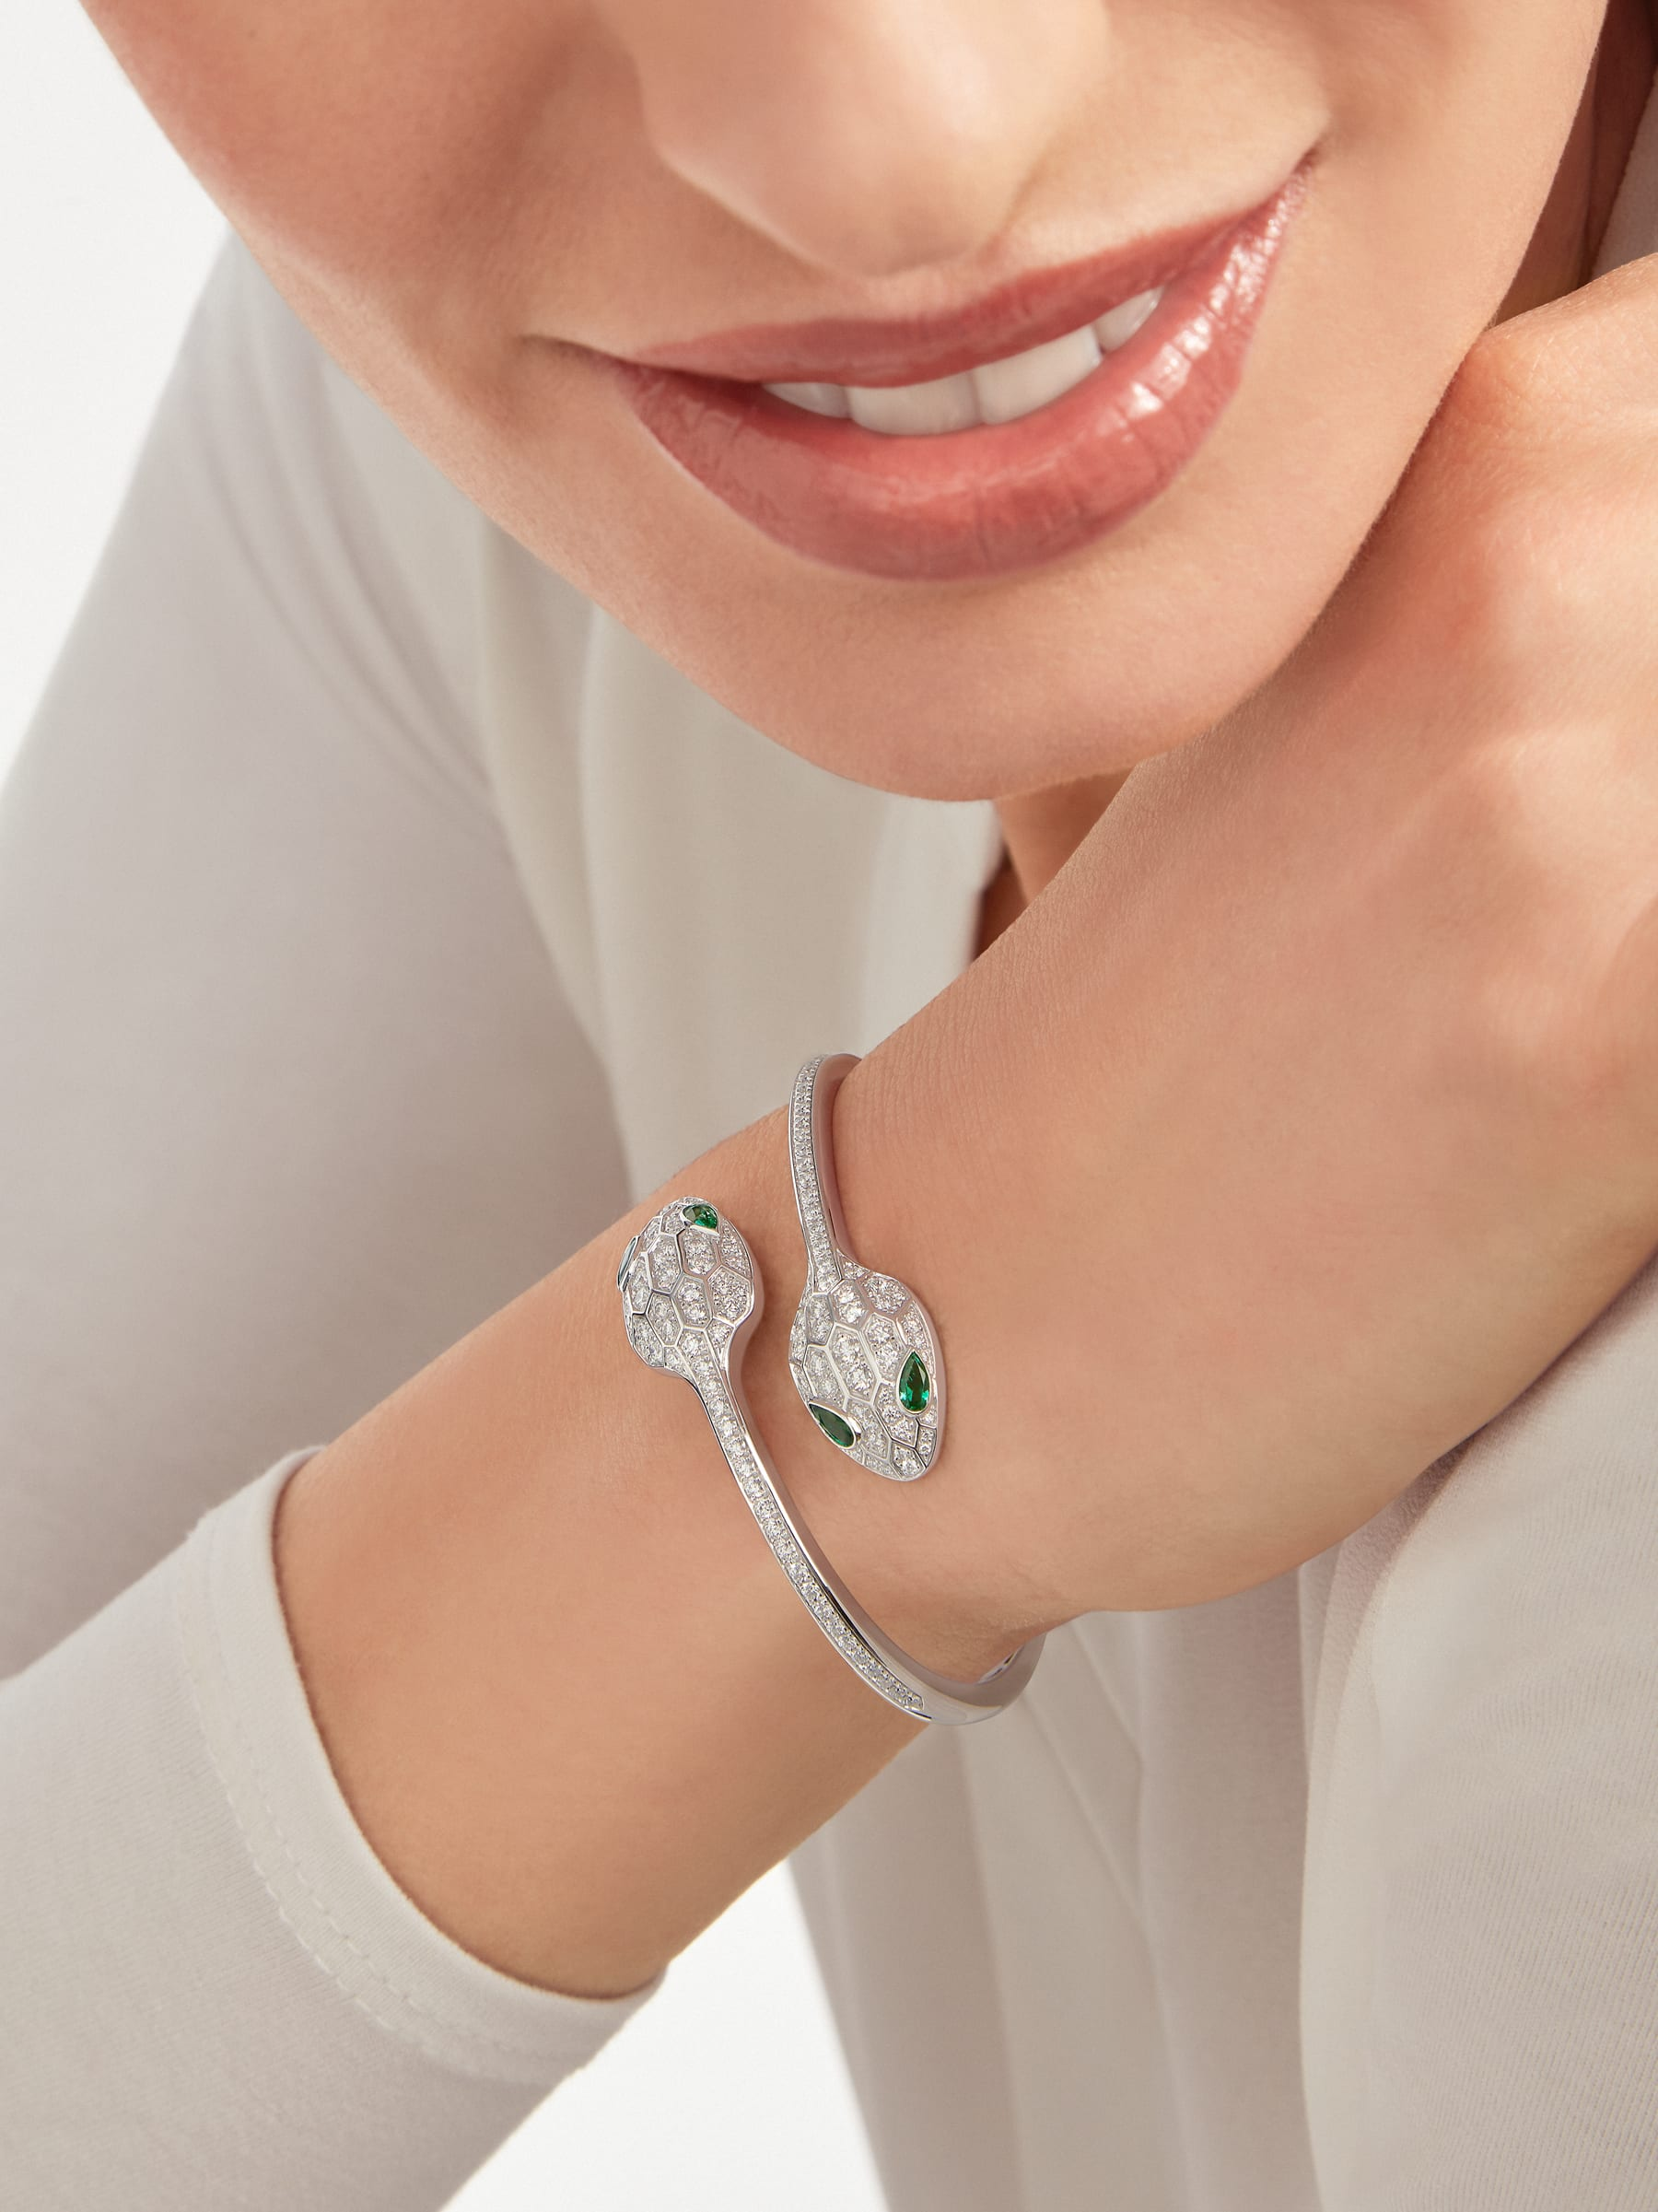 Serpenti 18 kt white gold bracelet set with emerald eyes and pavé diamonds. BR858551 image 3